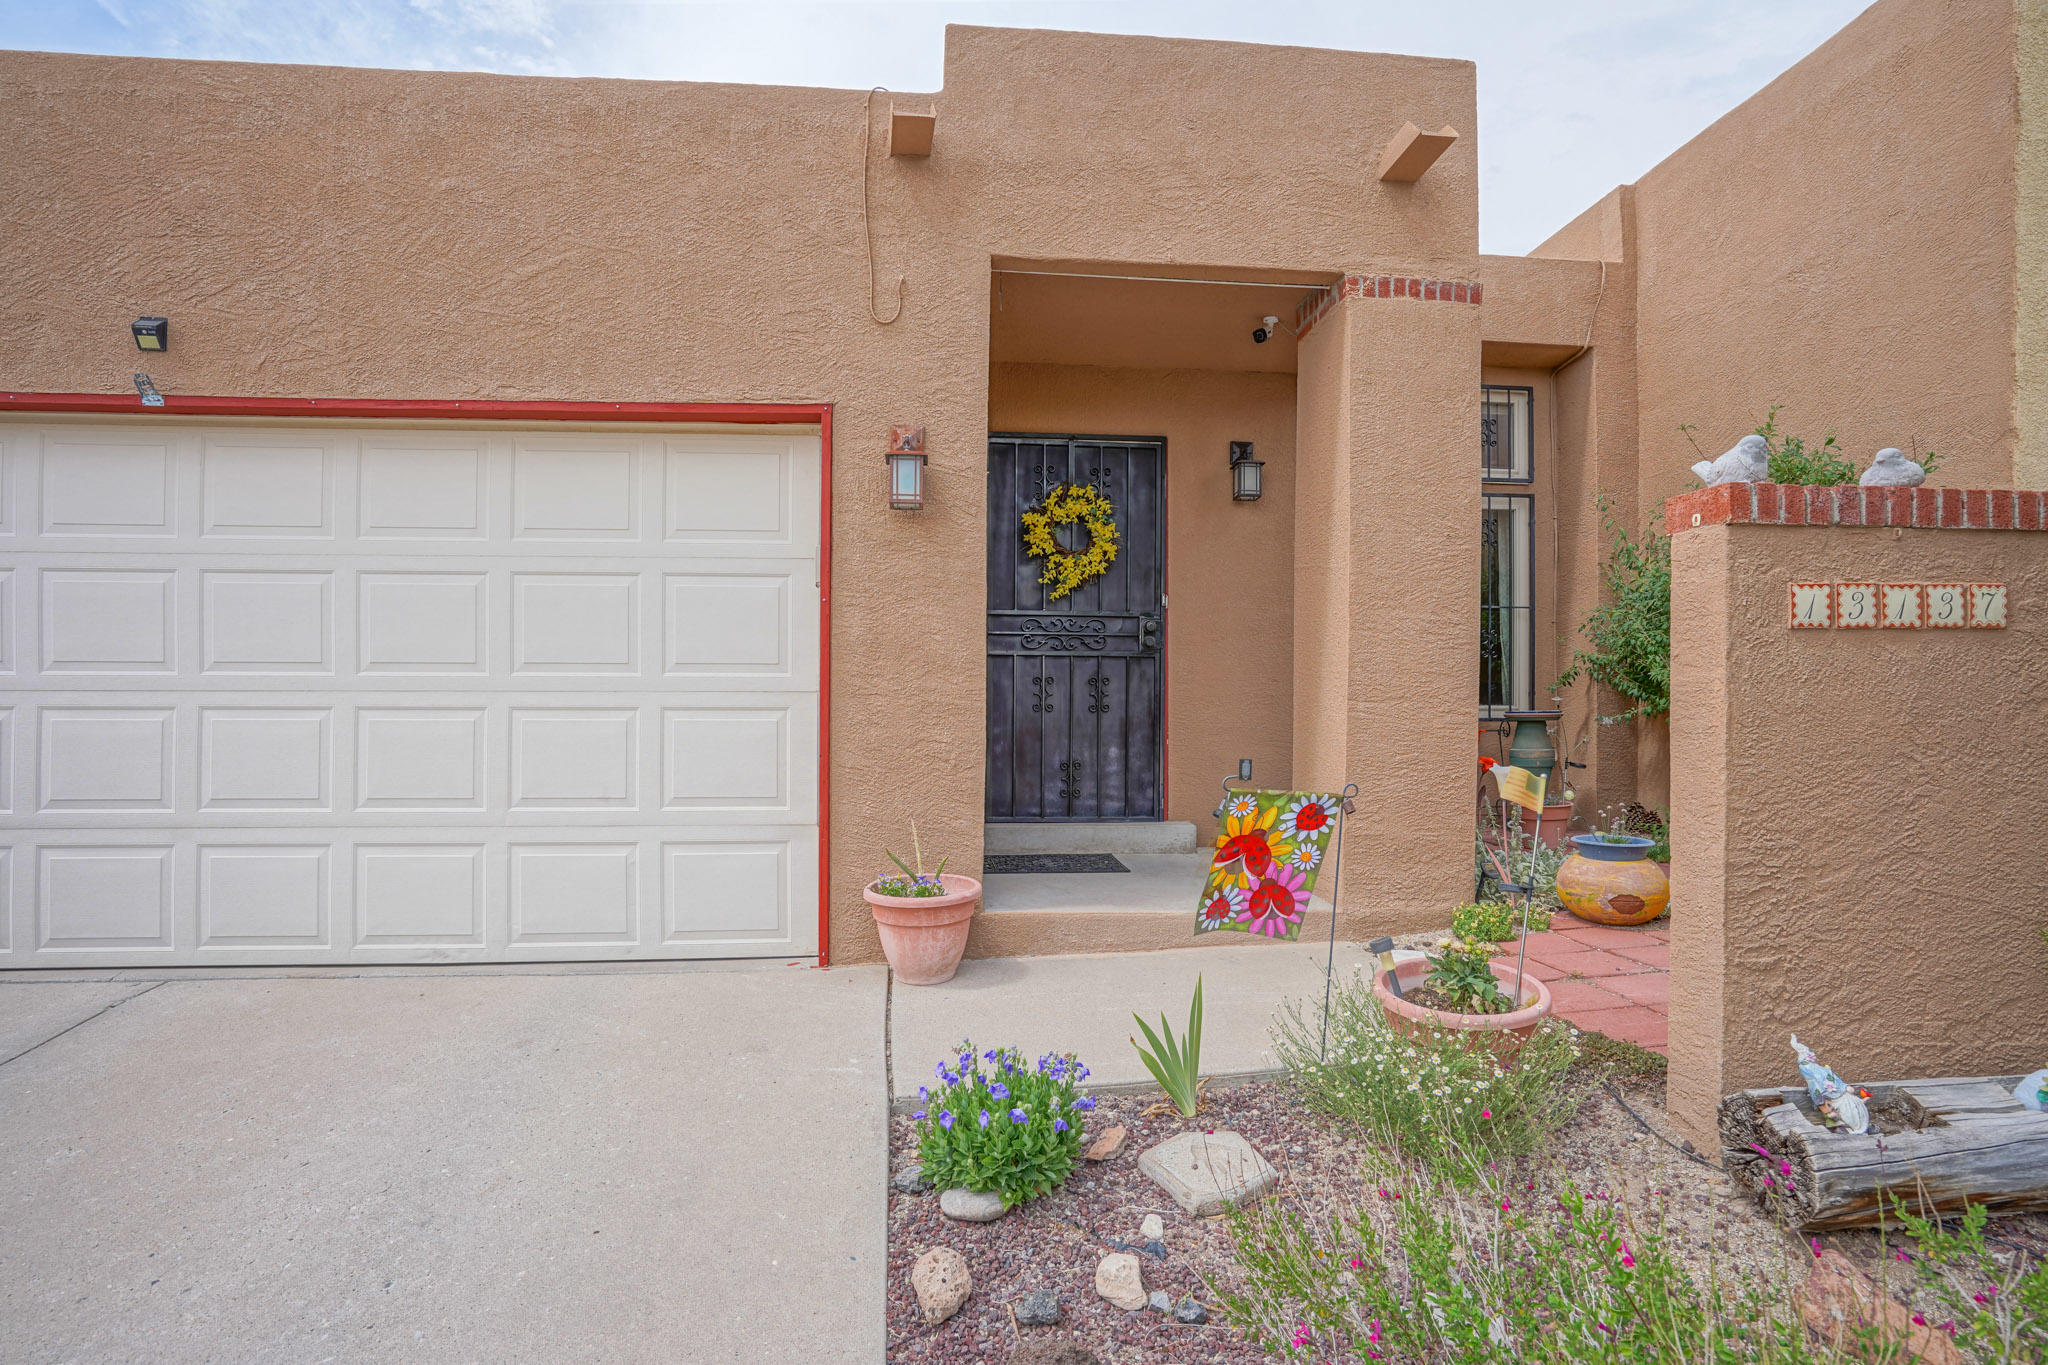 Single story Townhome(no HOA) East of Tramway close to Foothills Trails and Tramway path.  Convenient to Sandia Lab, KAFB, shopping and schools.  11' Ceiling in Great Room with clearstory window and fireplace.  Skylights in Kitchen,  both Bathrooms and Office/Flex area for light, bright floor plan.  Refrigerated Air!  Updated vinyl windows.  Covered patio, pergola and separate area with Hot tub in backyard. Cozy front patio courtyard.